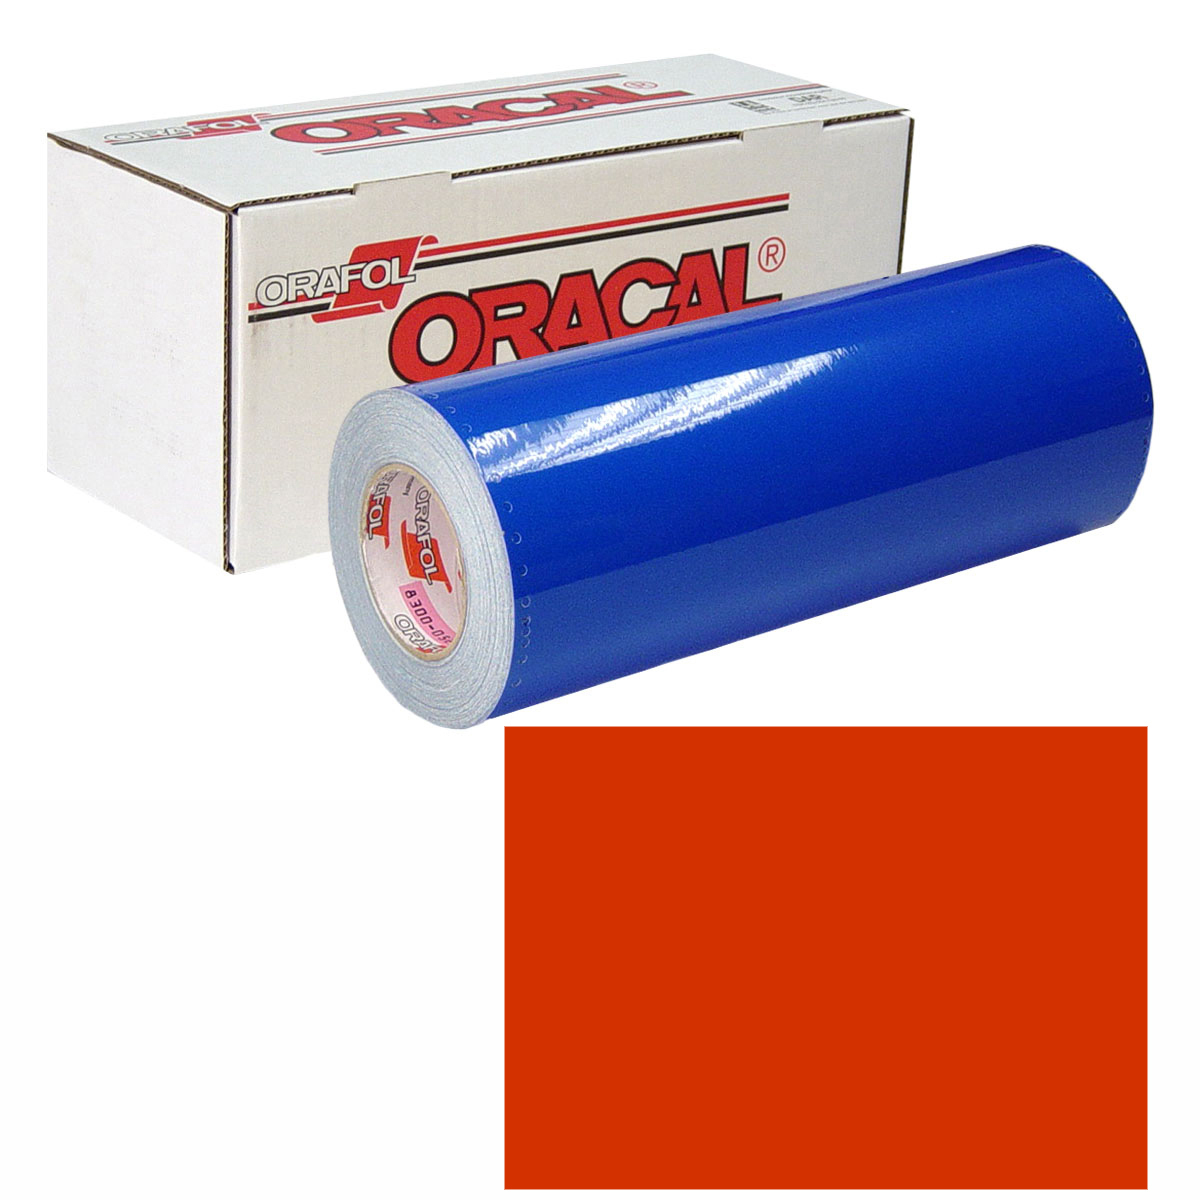 ORACAL 631 Unp 48In X 50Yd 047 Orange Red